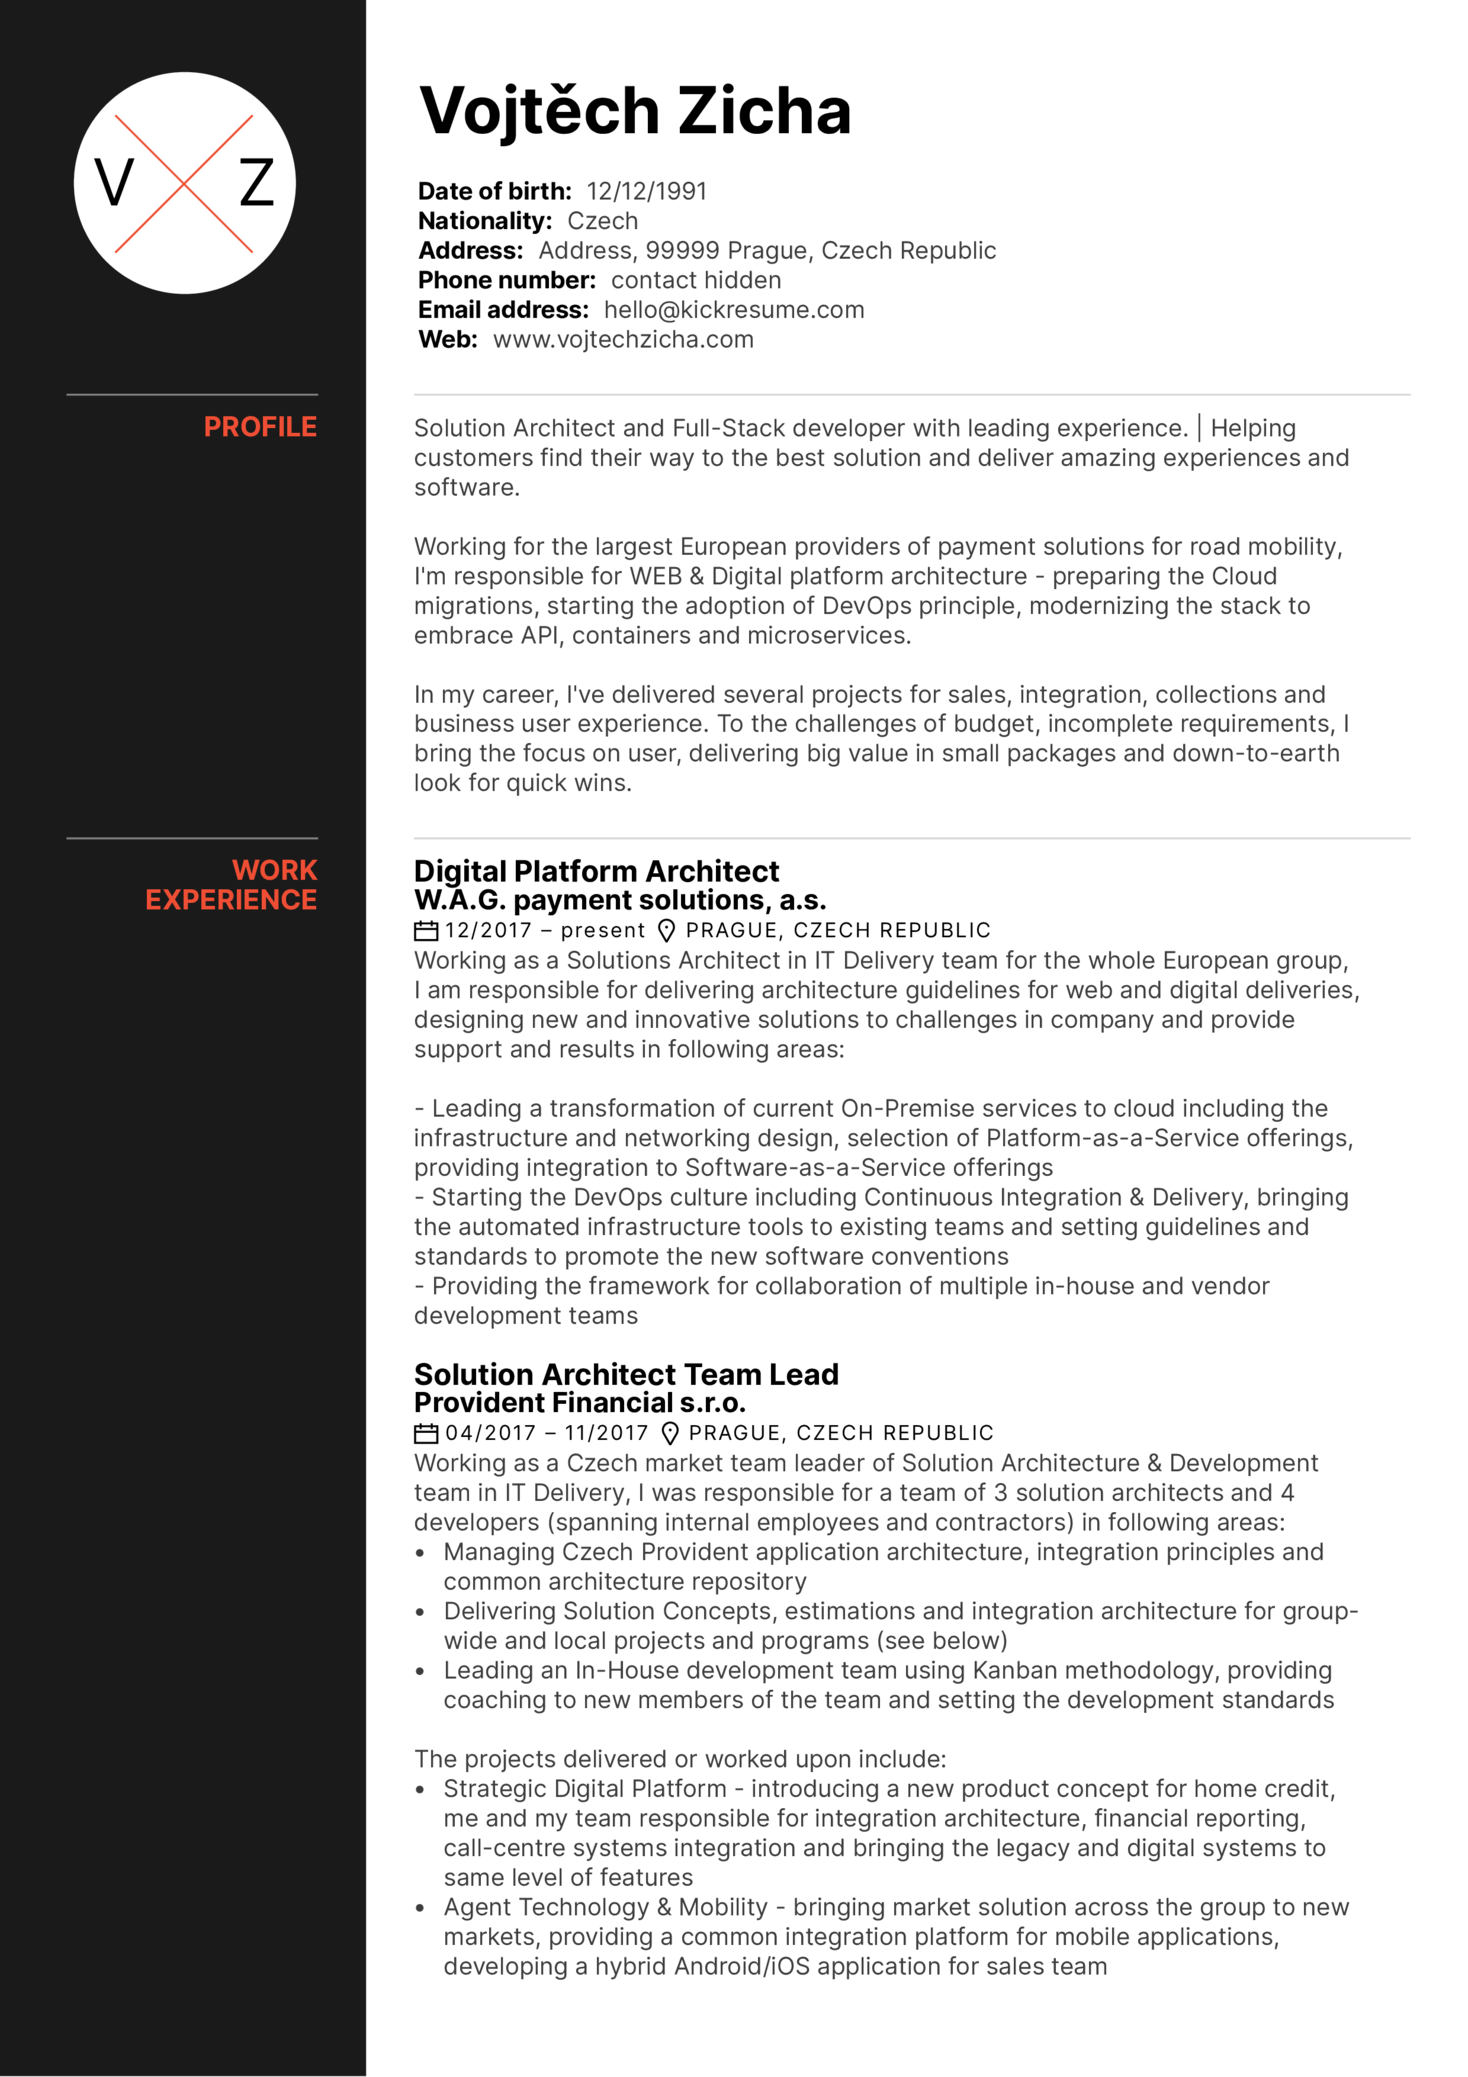 resume examples by real people  solution architect resume example